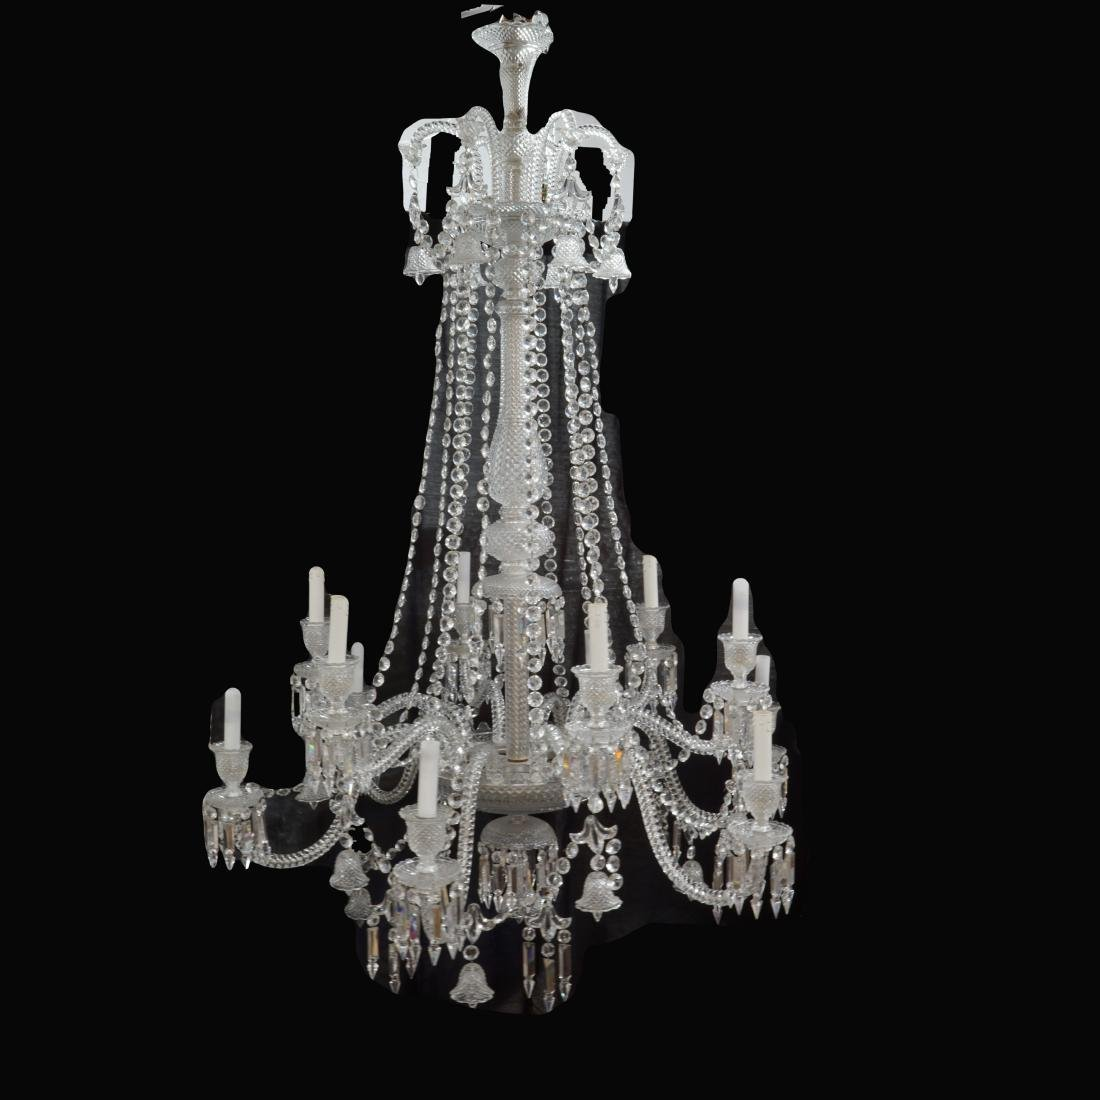 12 Arm Baccarat Crystal Chandelier